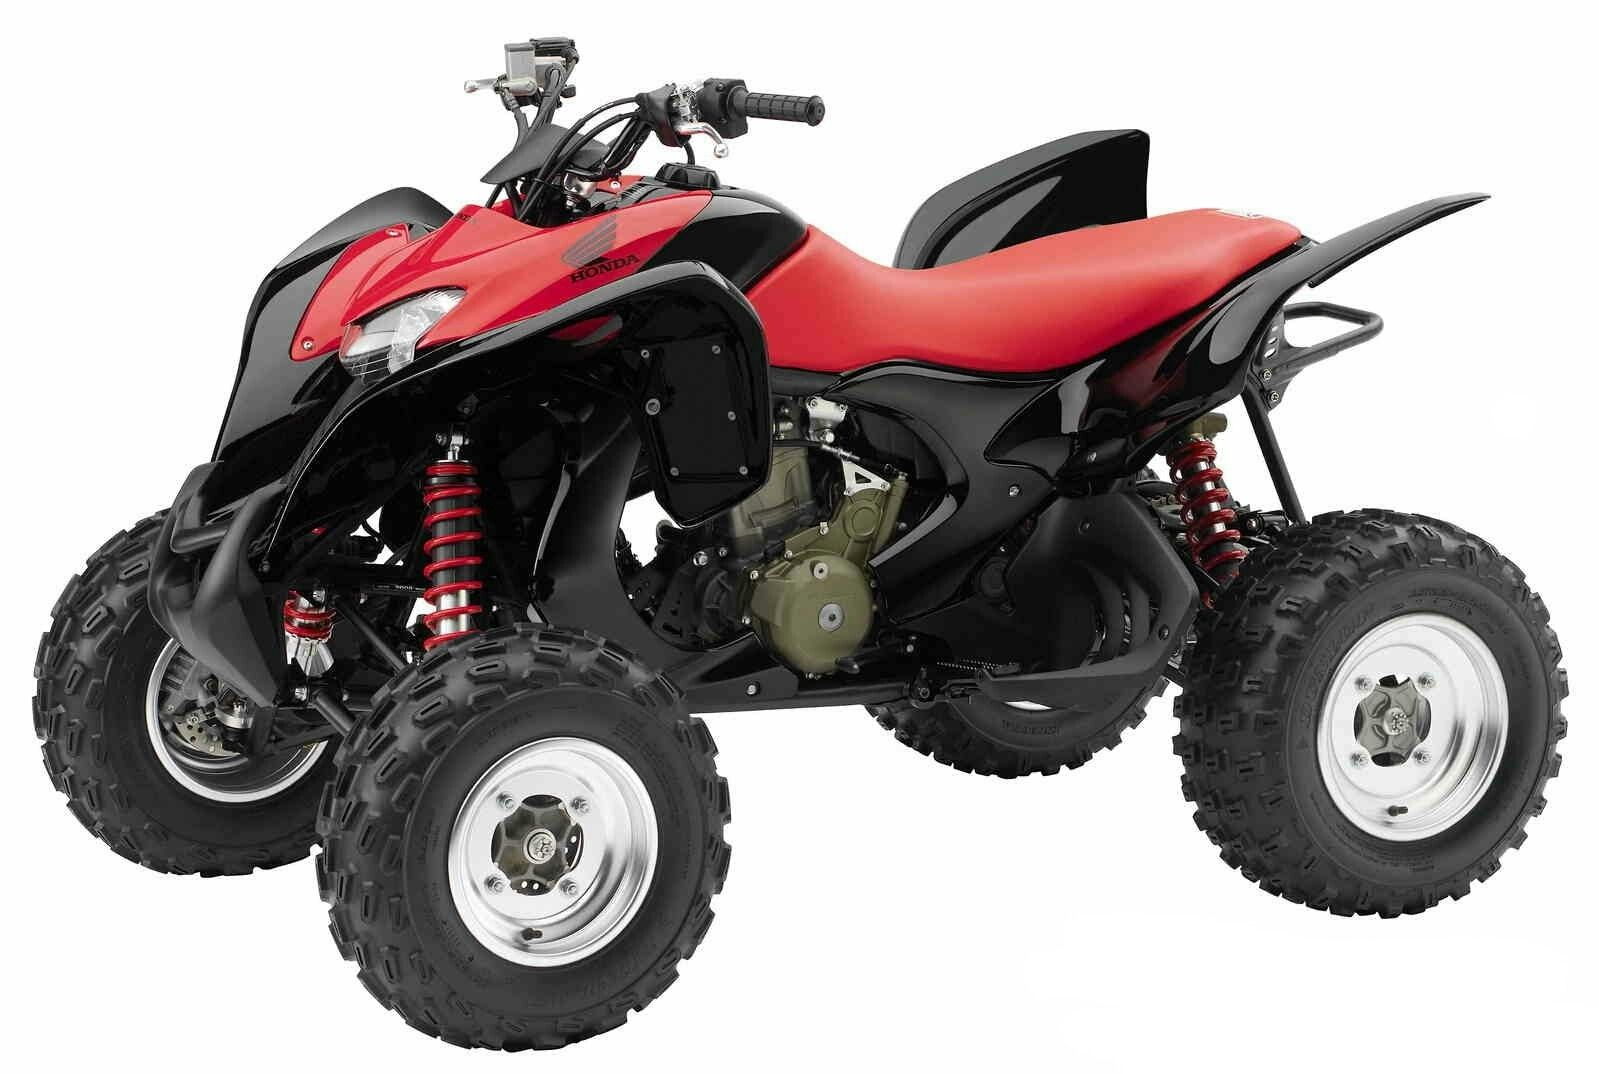 2019 Honda Trx450r Overview And Price Automotive Pinterest